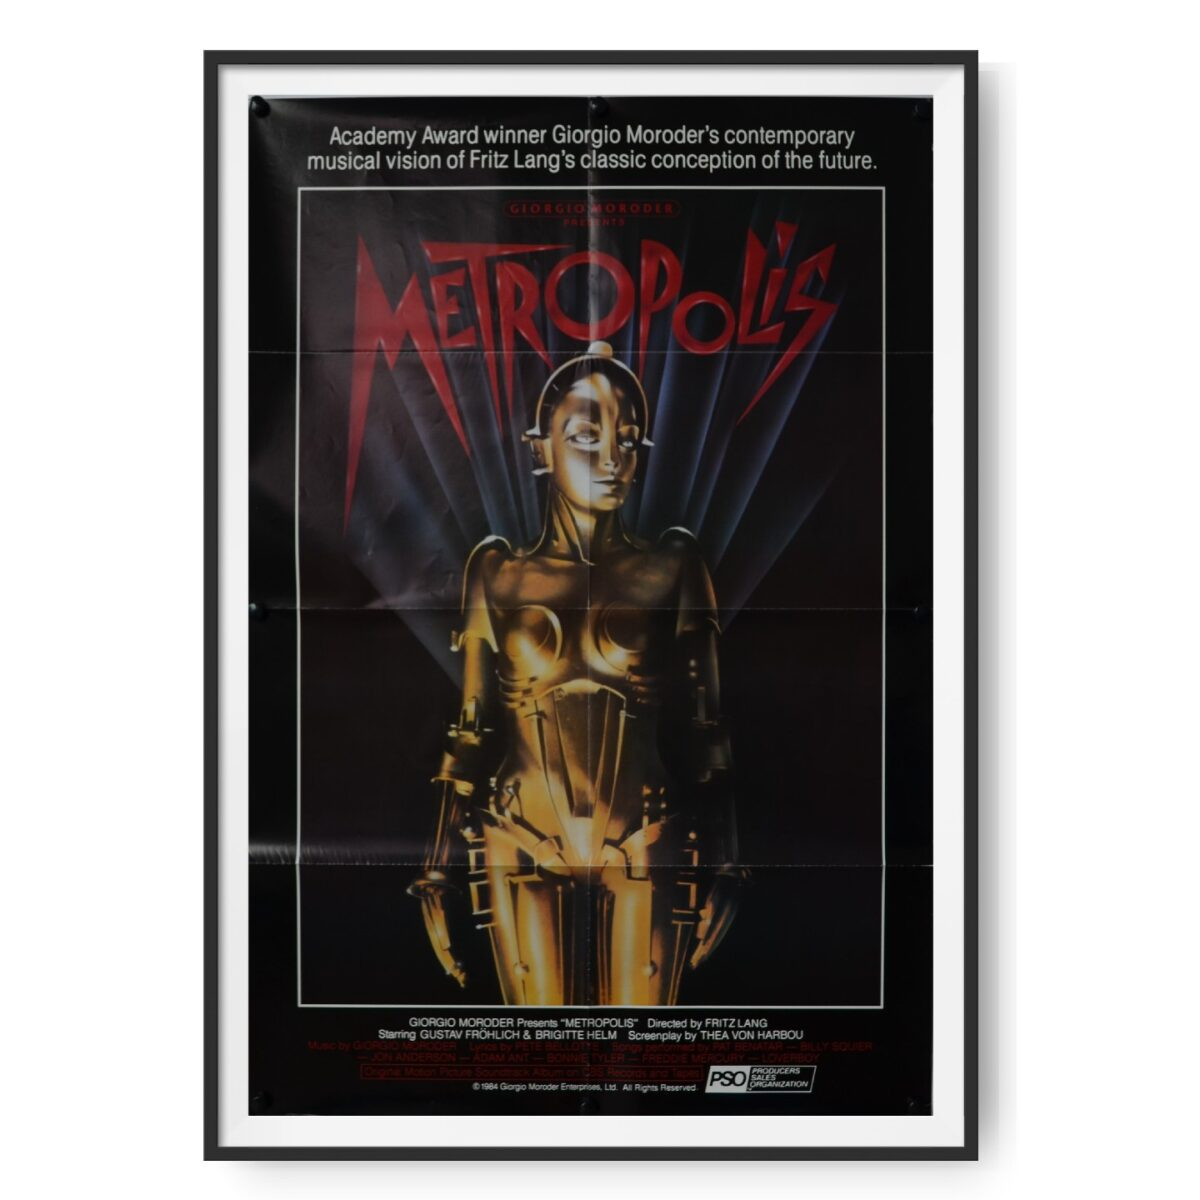 This is an original One sheet poster for a 1984 re-release of the film Metropolis, an expressionist sci-fi drama film directed by Fritz Lang.